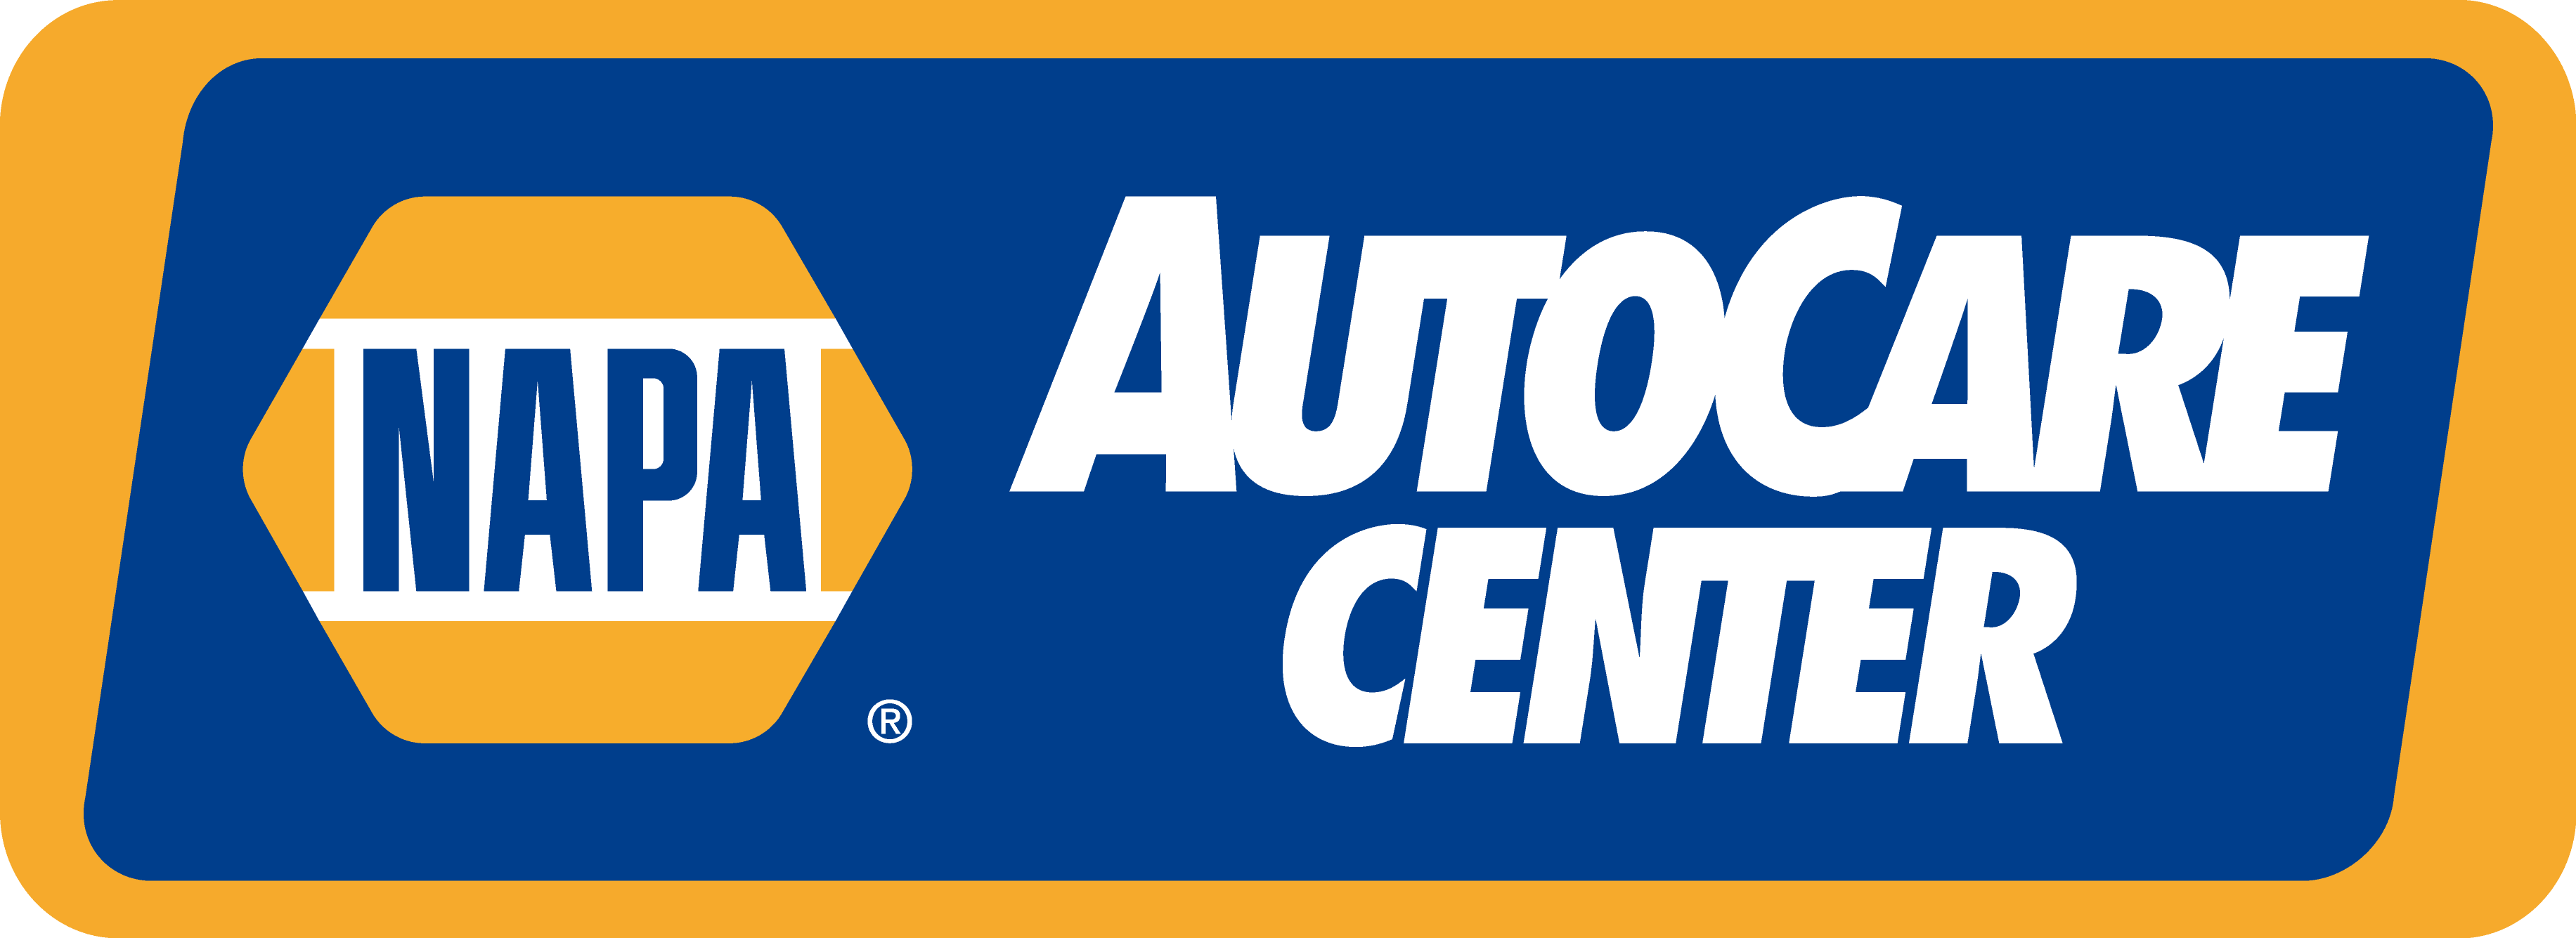 NAPA Auto Care Center, A & A Auto Repair, Ocean Springs, MS, 39564